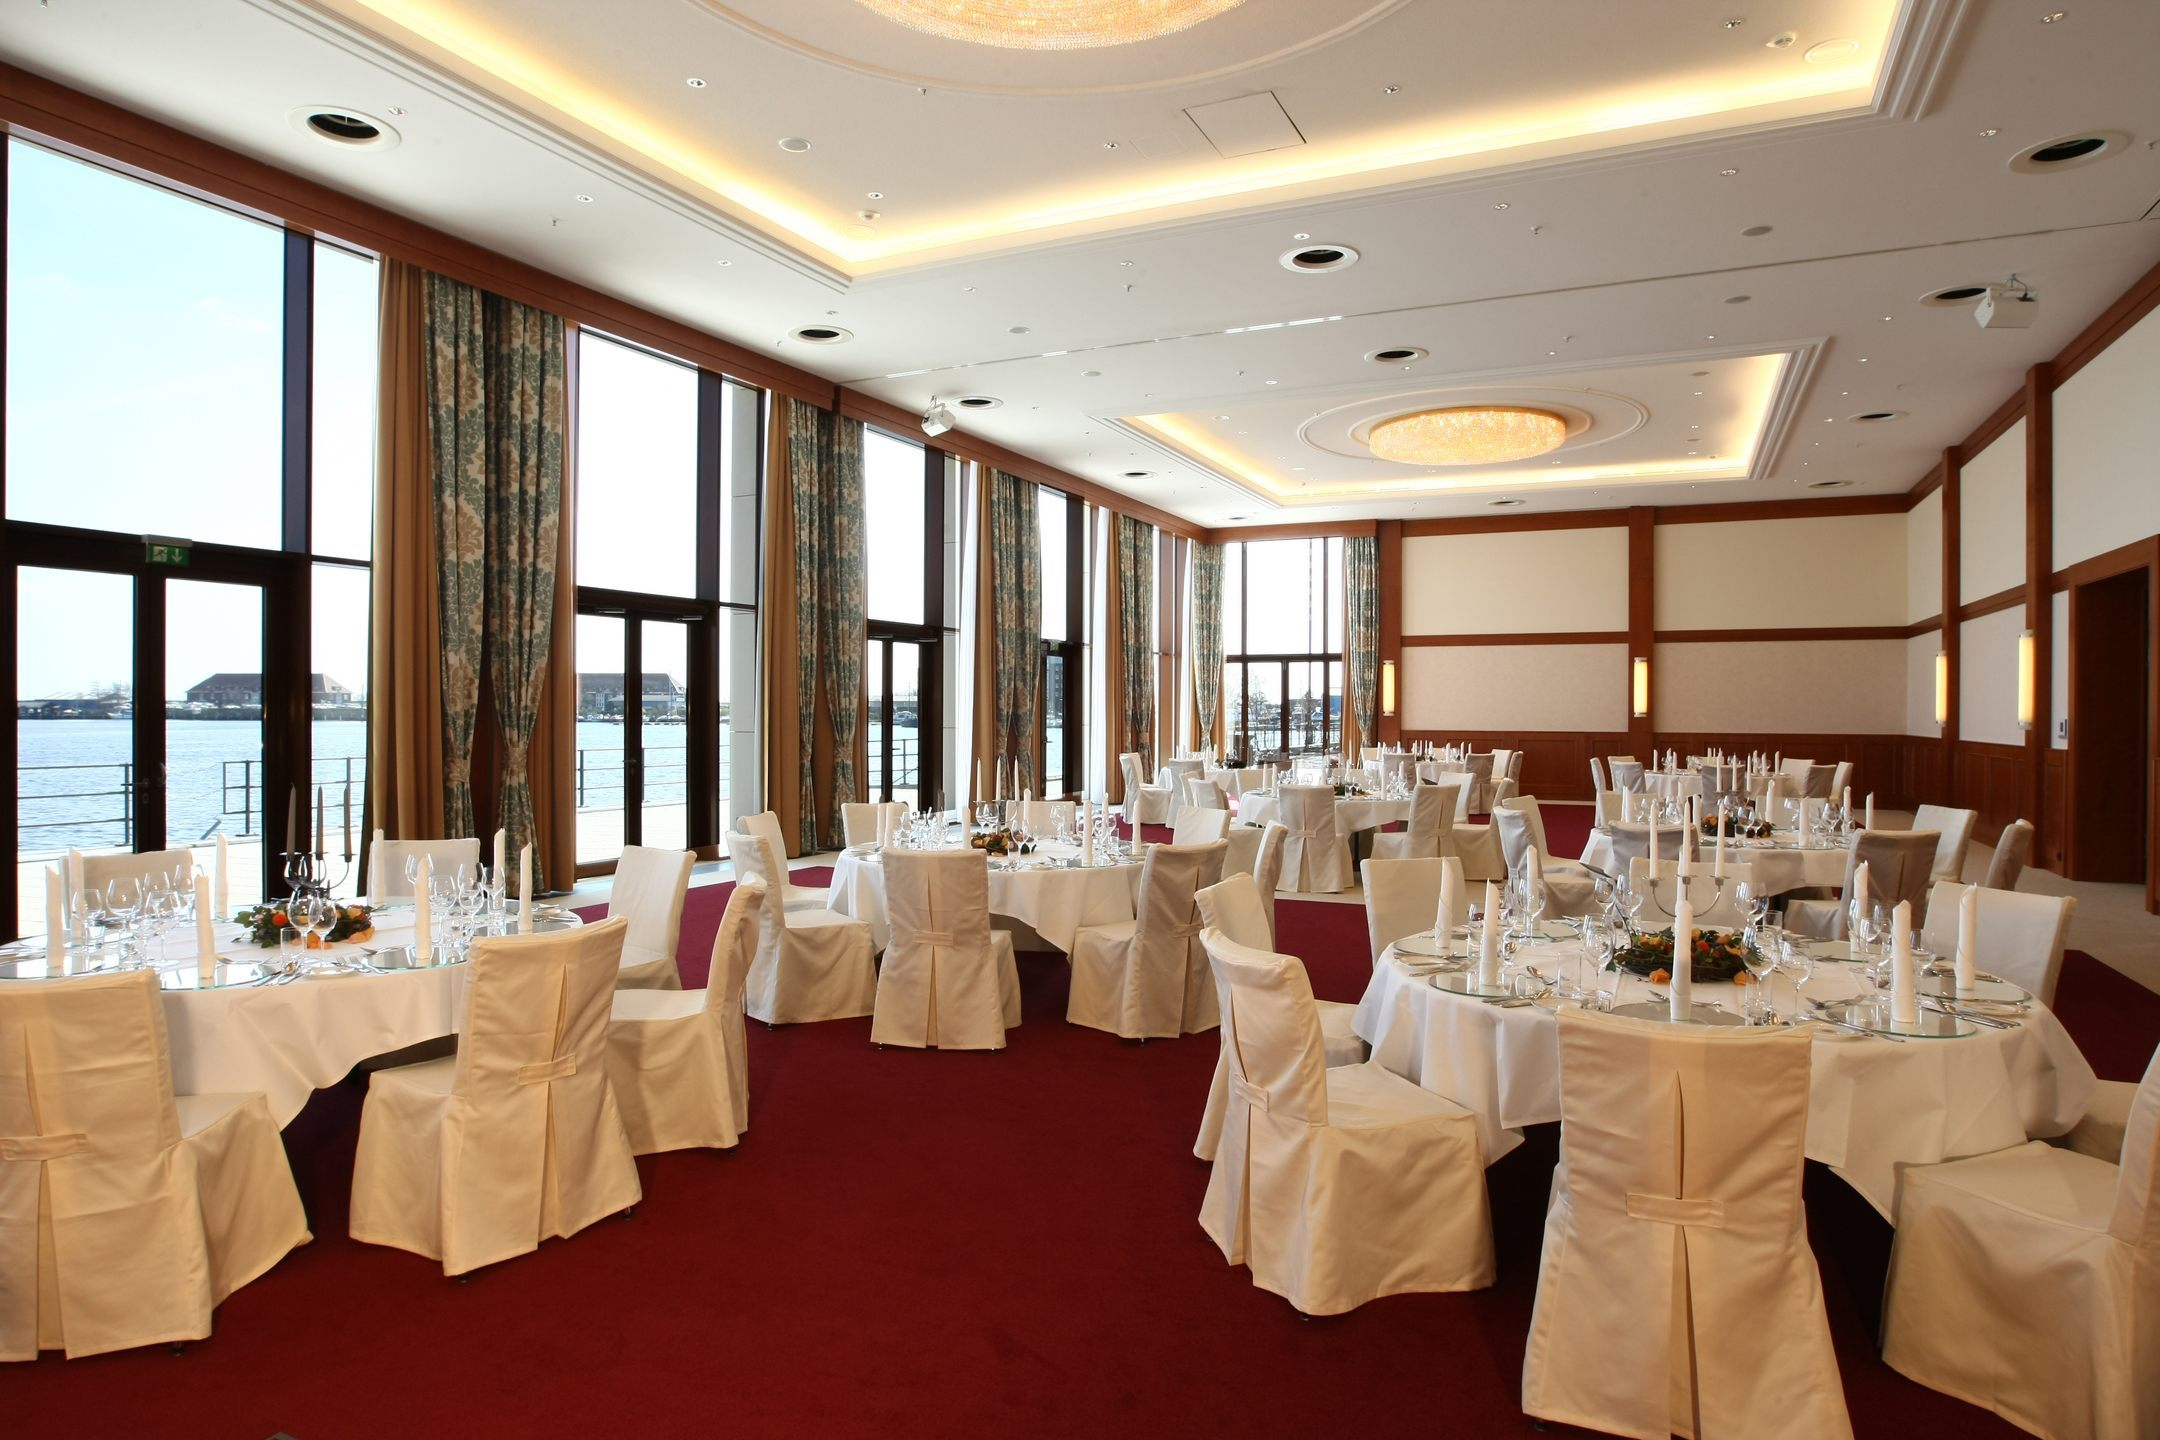 Decorated room for an event in the ATLANTIC Hotel Wilhelmshaven